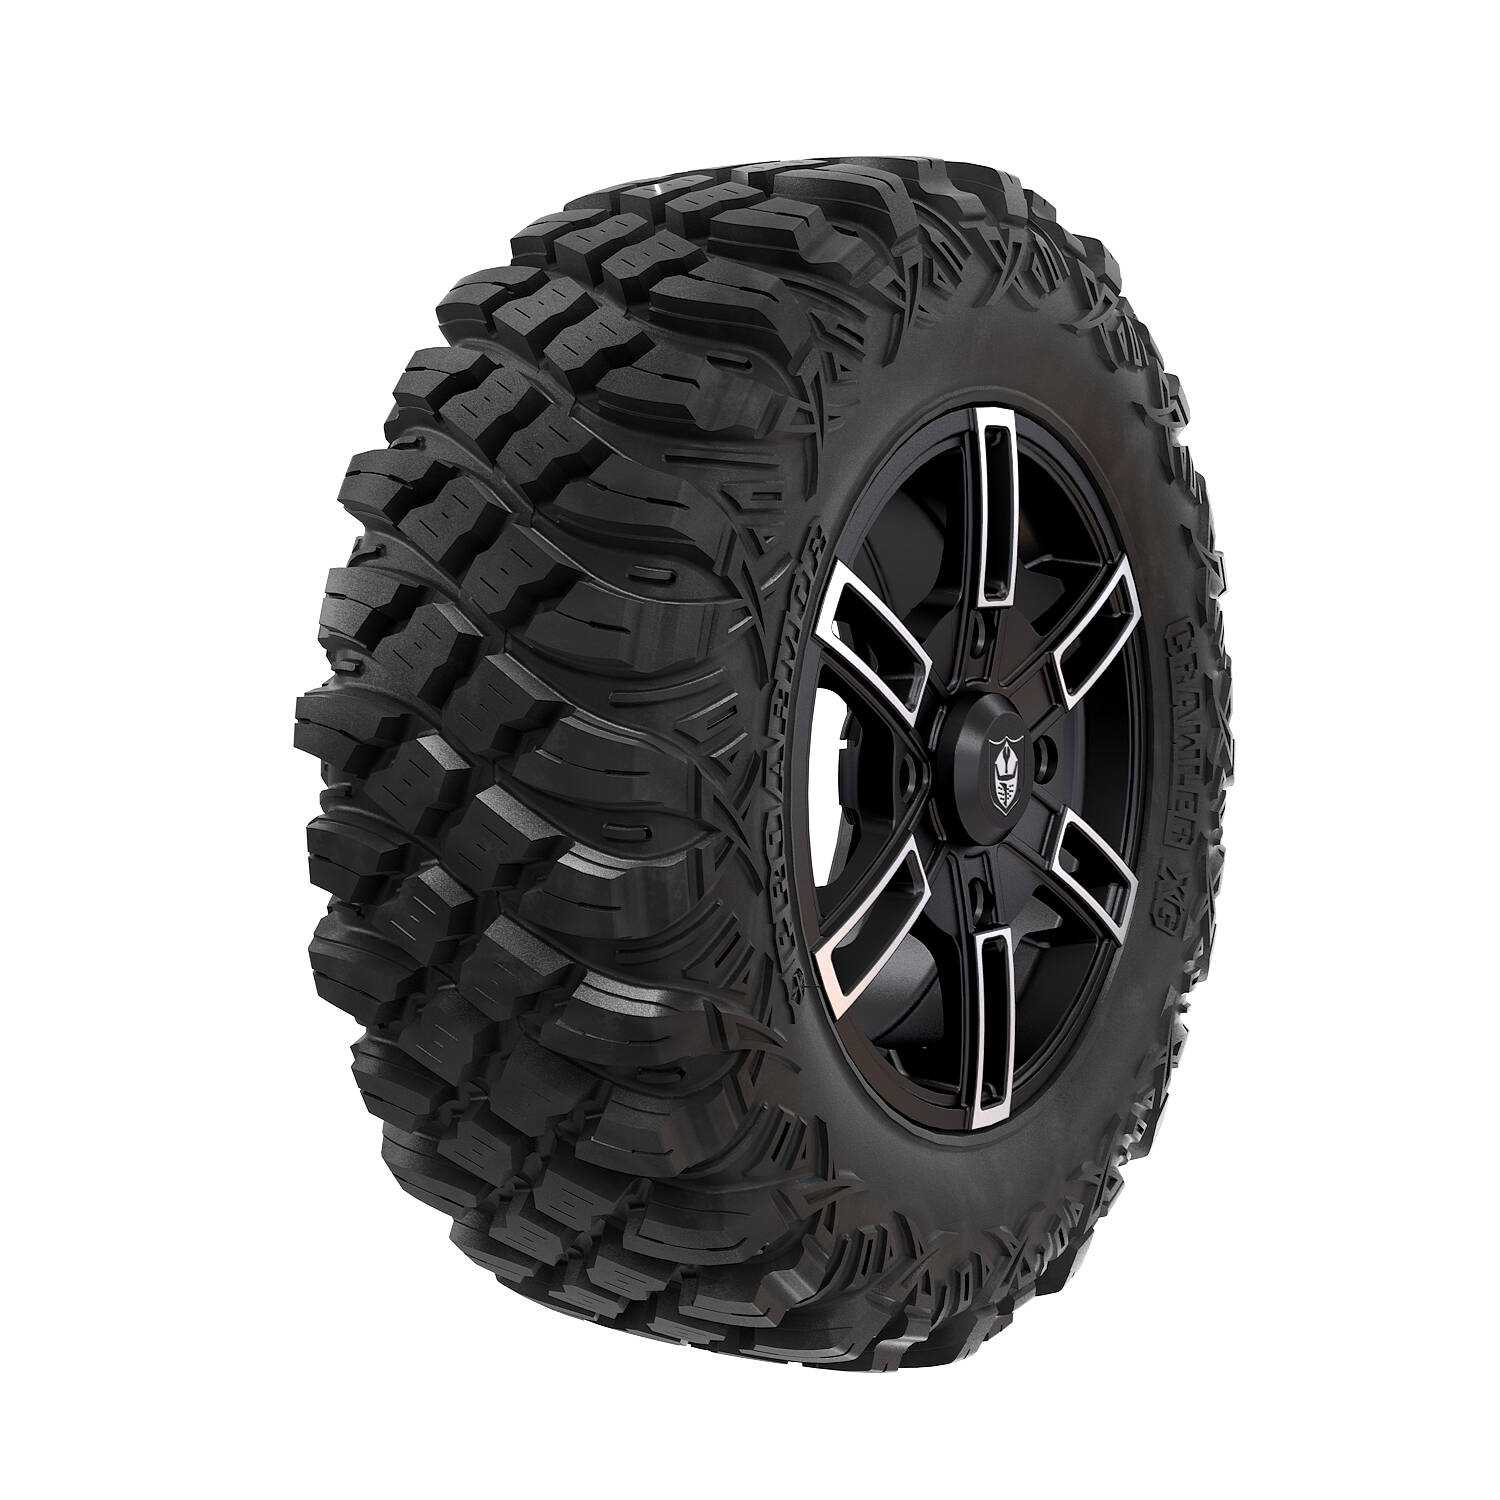 Pro Armor® Wheel & Tire Set: Wyde - Accent & Crawler XG - 28""